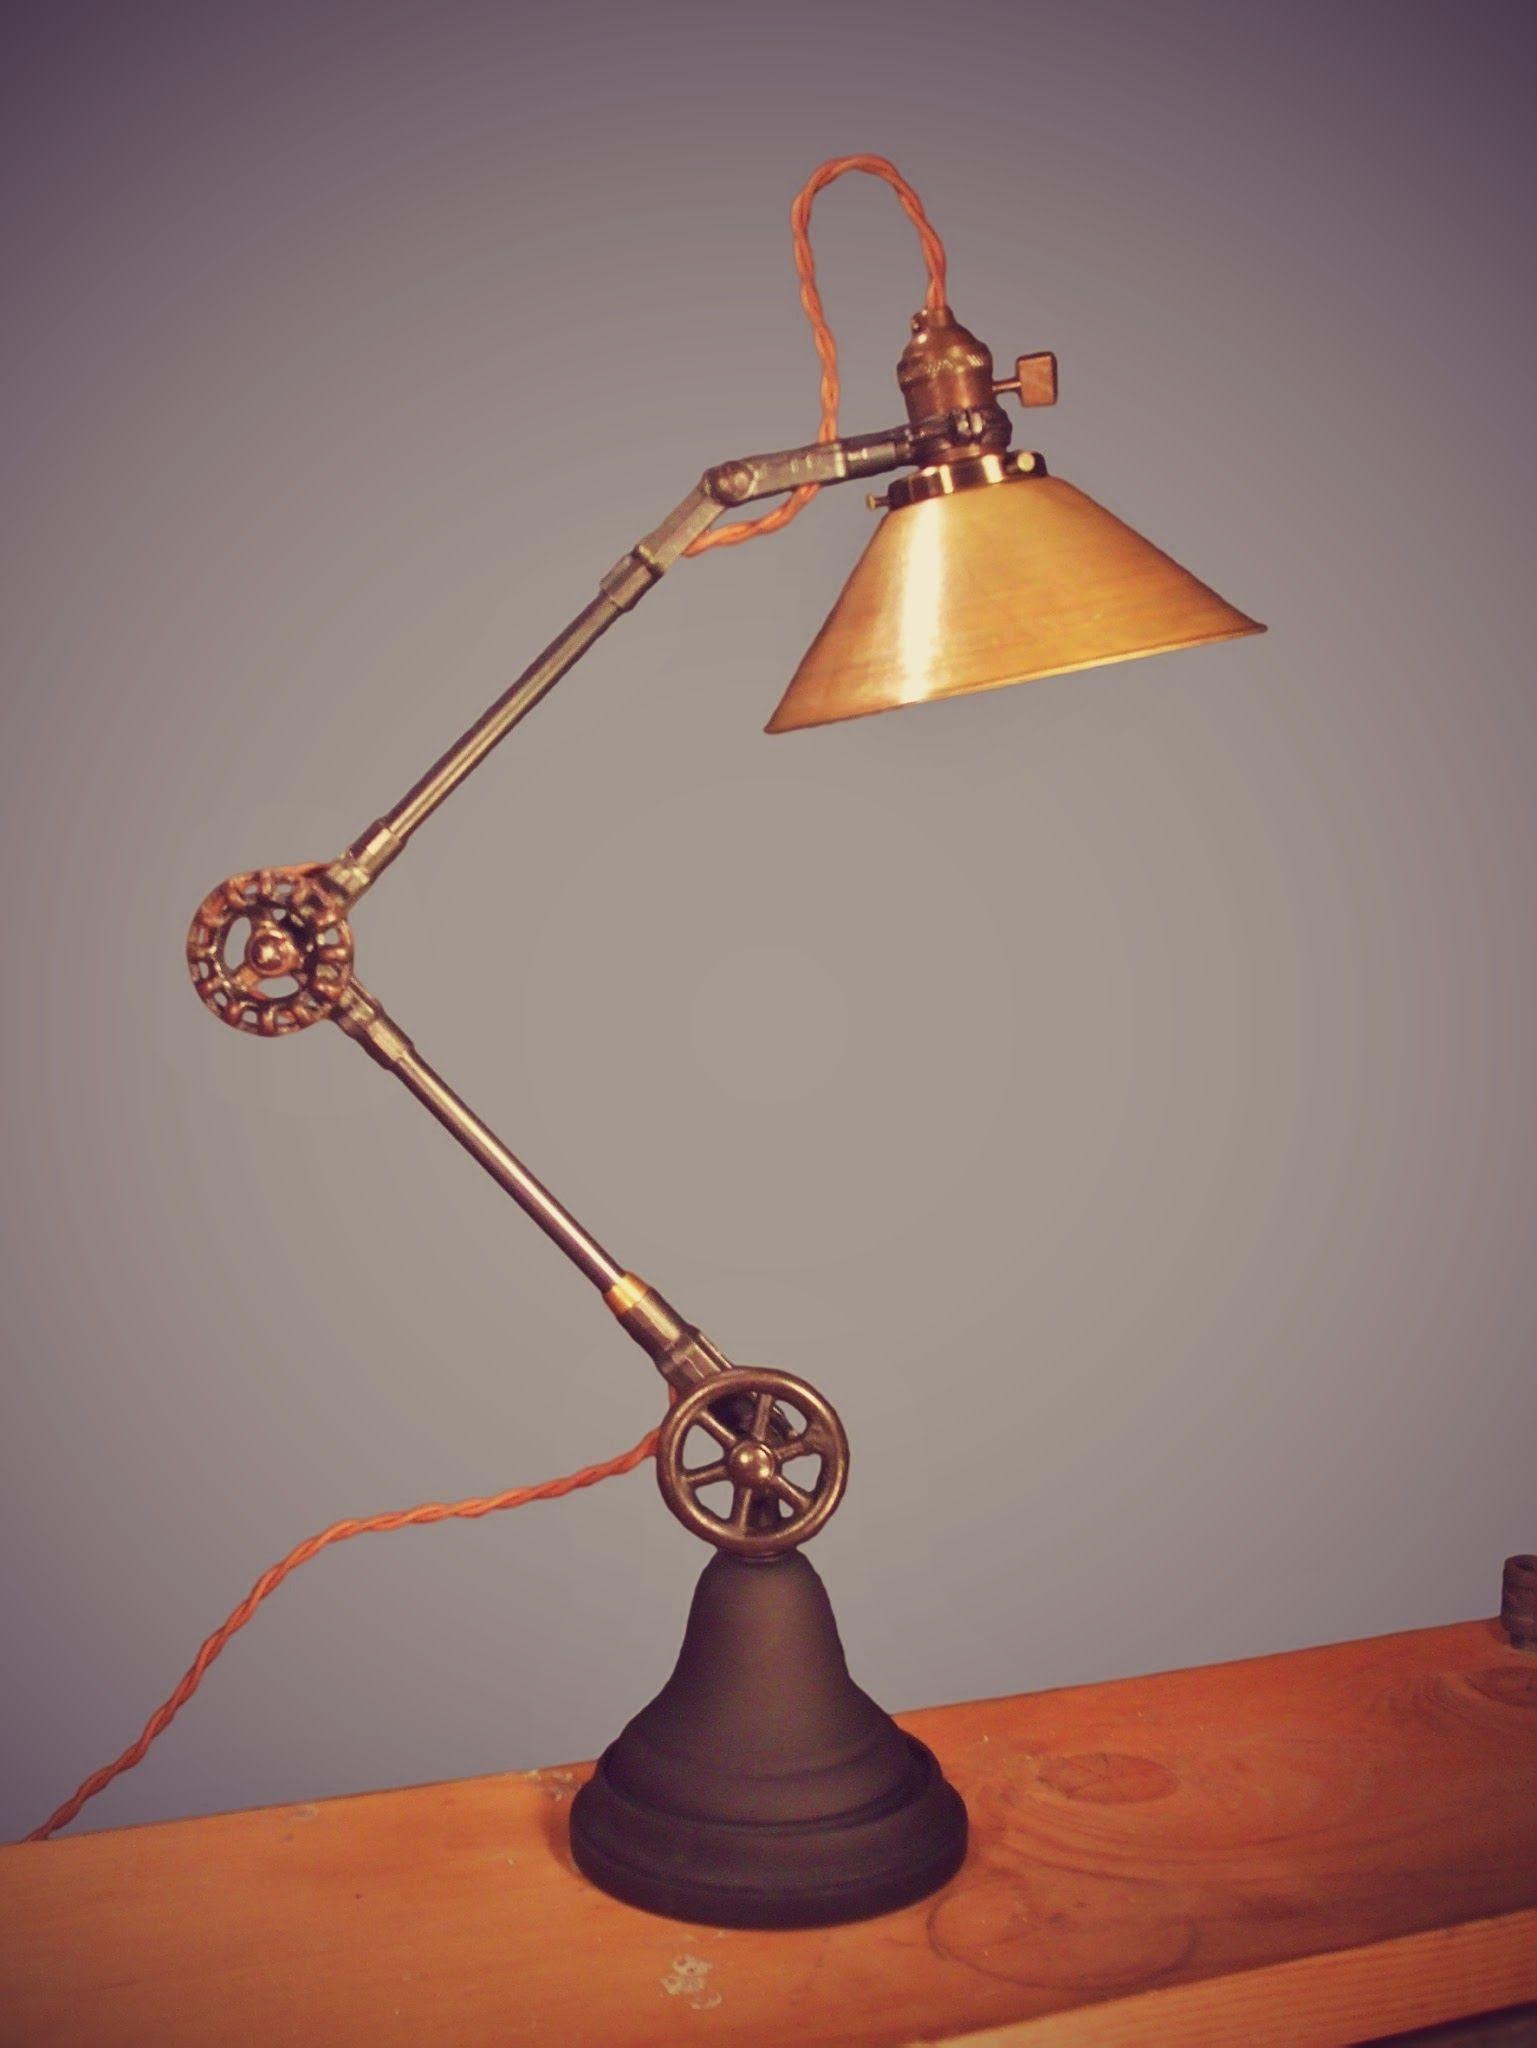 Details About Vintage Industrial Desk Lamp Machine Age Task Light Cast Iron Steampunk With Images Vintage Industrial Desk Industrial Desk Lamp Lamp